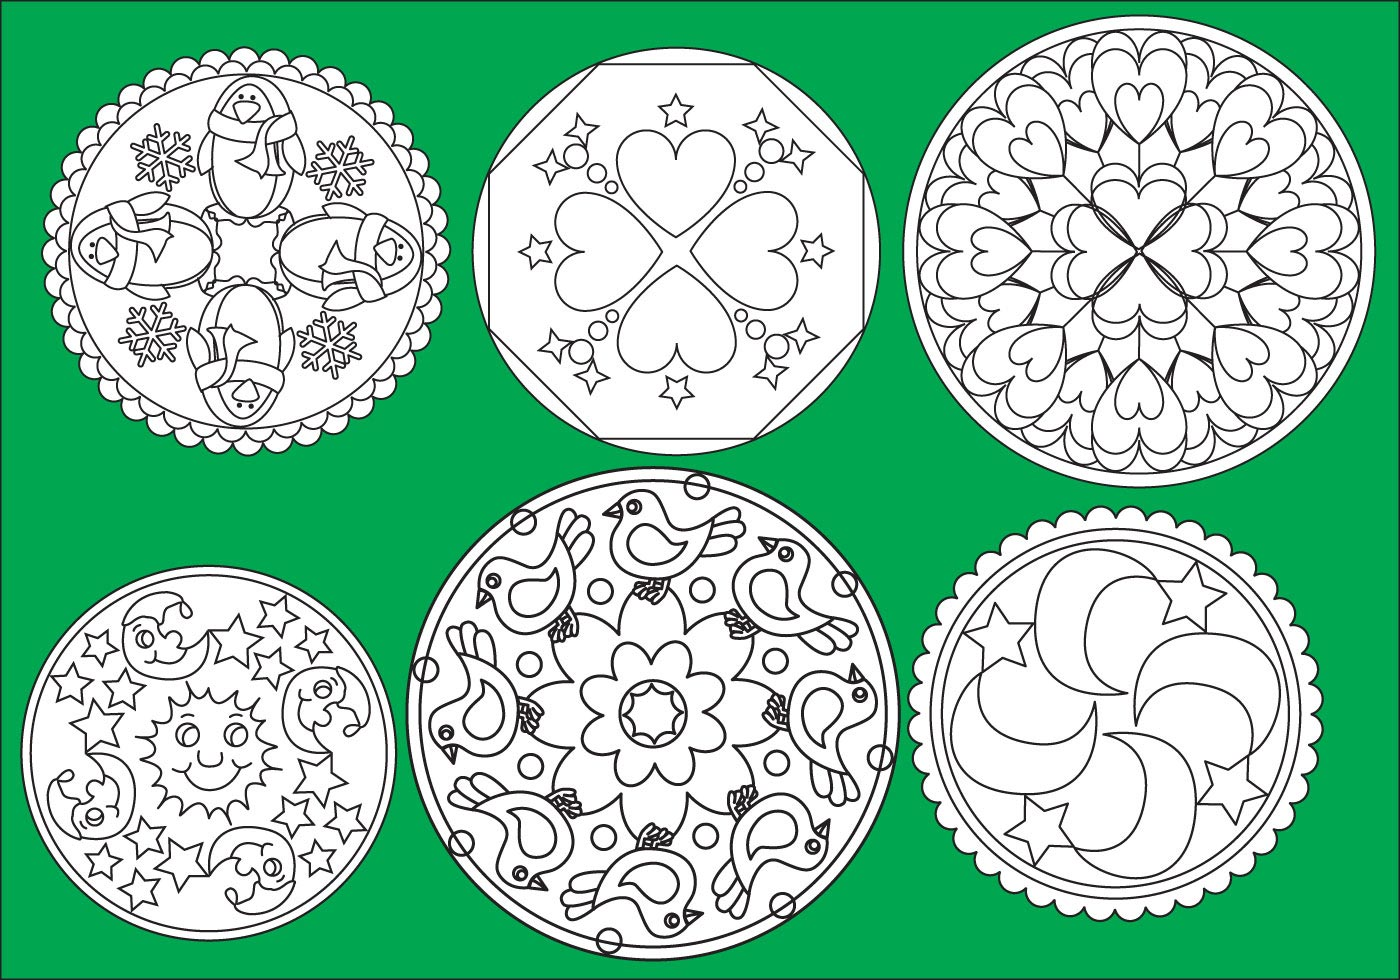 Children Coloring Mandalas - Download Free Vector Art, Stock ...